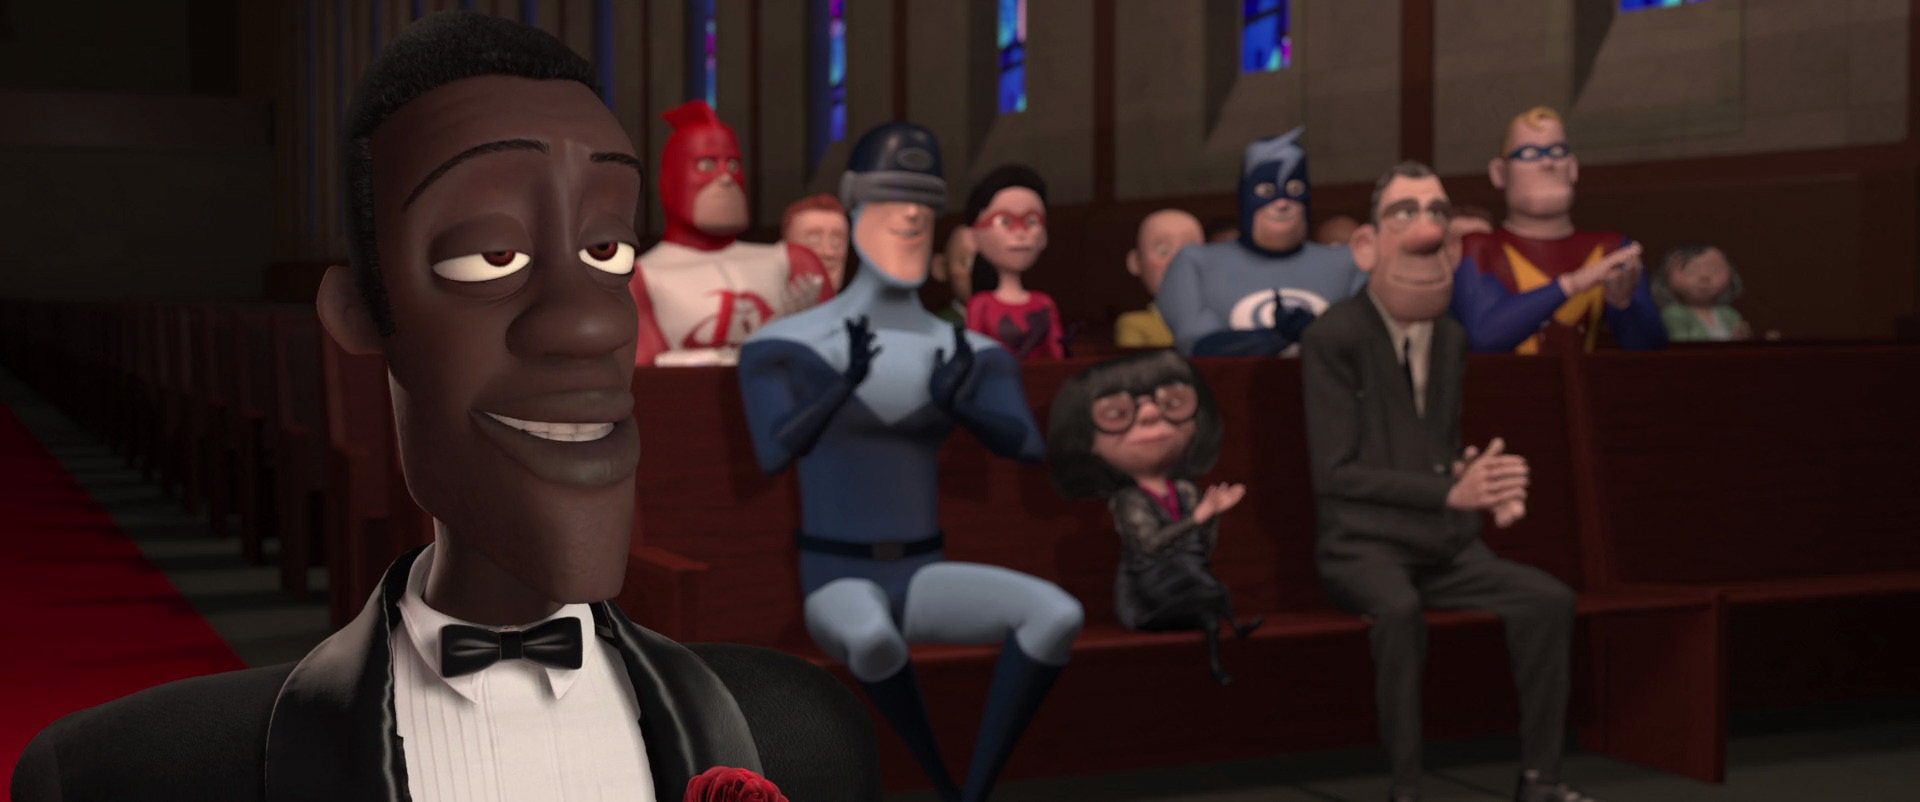 Police Officer Wallpaper Hd Meta Man Character From The Incredibles Pixar Planet Fr